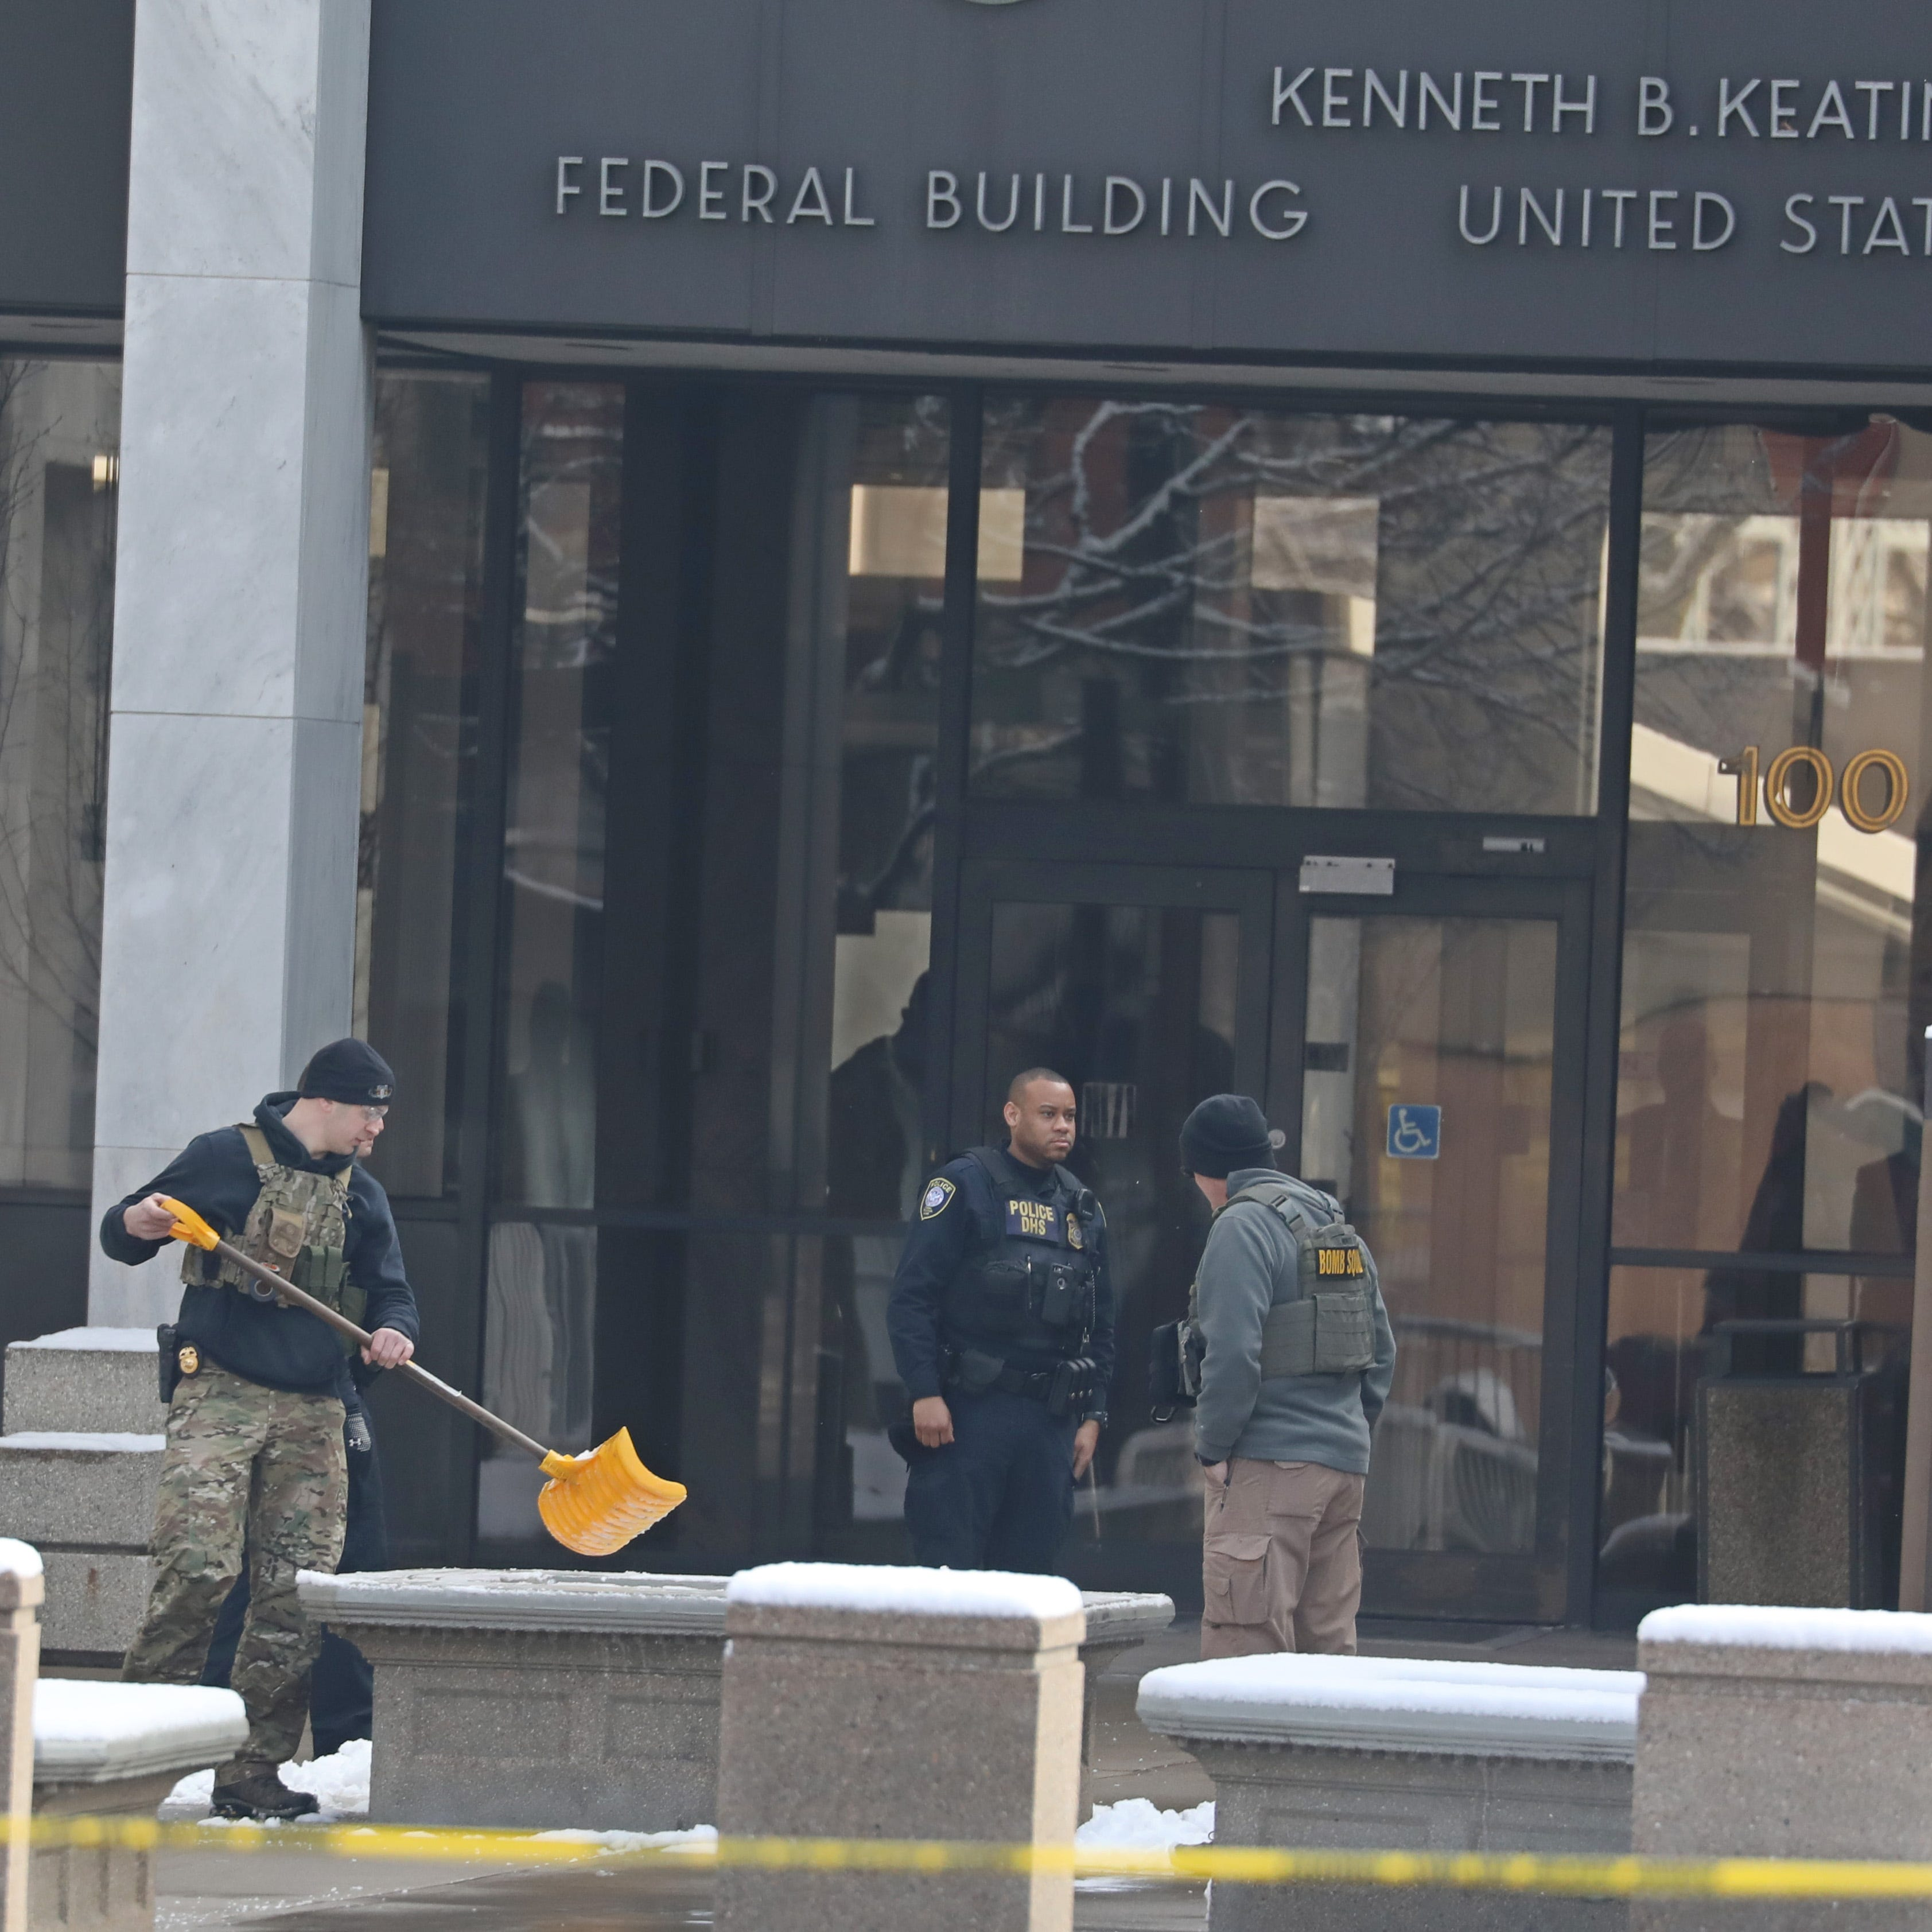 Federal Building evacuated after suspicious package found